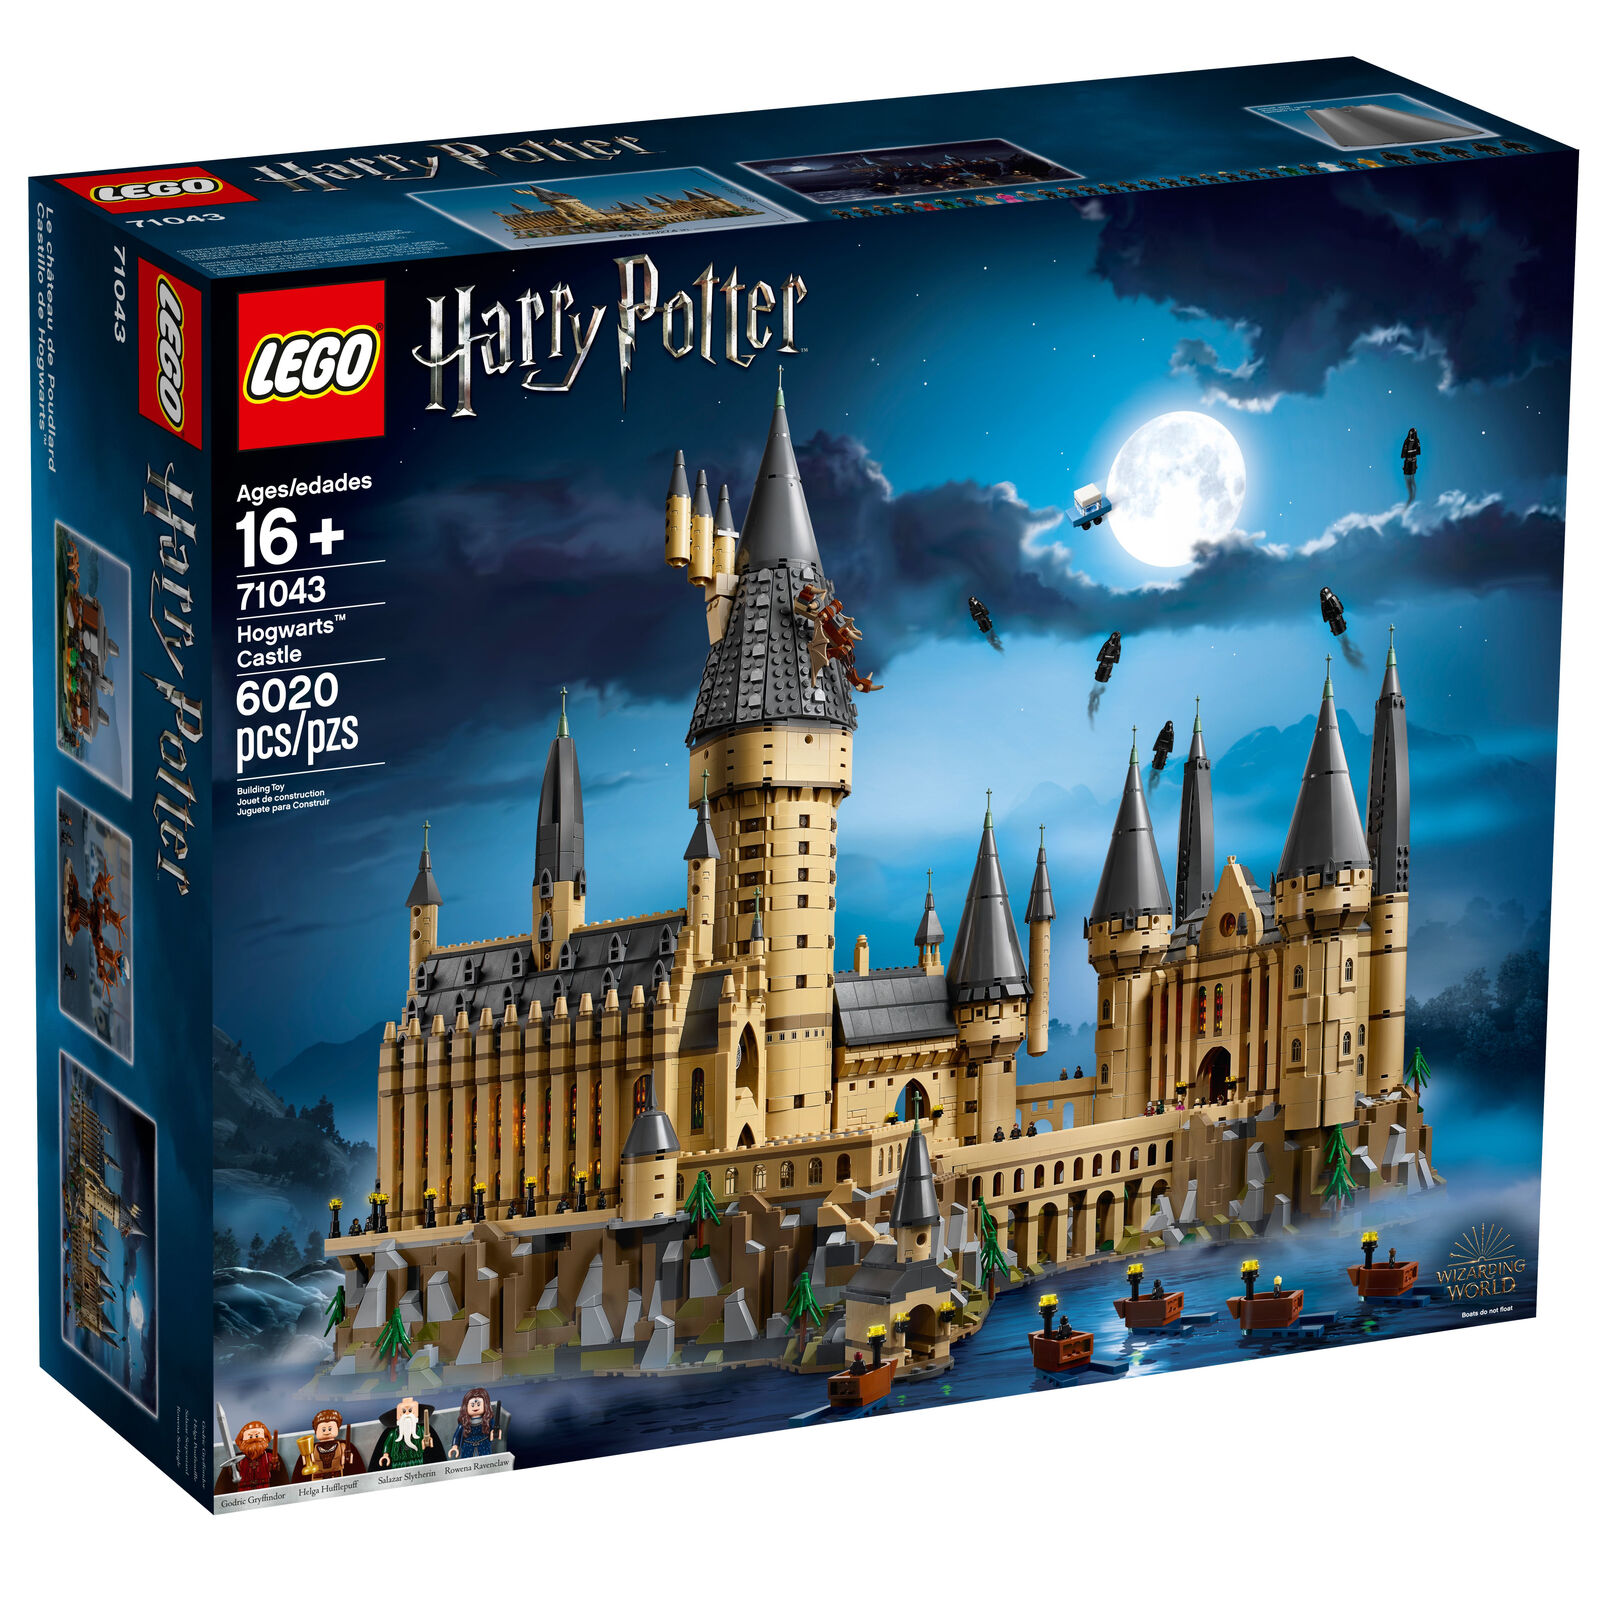 Lego Harry Potter Hogwarts Castle Set 71043 - - - 4 minifigures 27 microfigures a55891